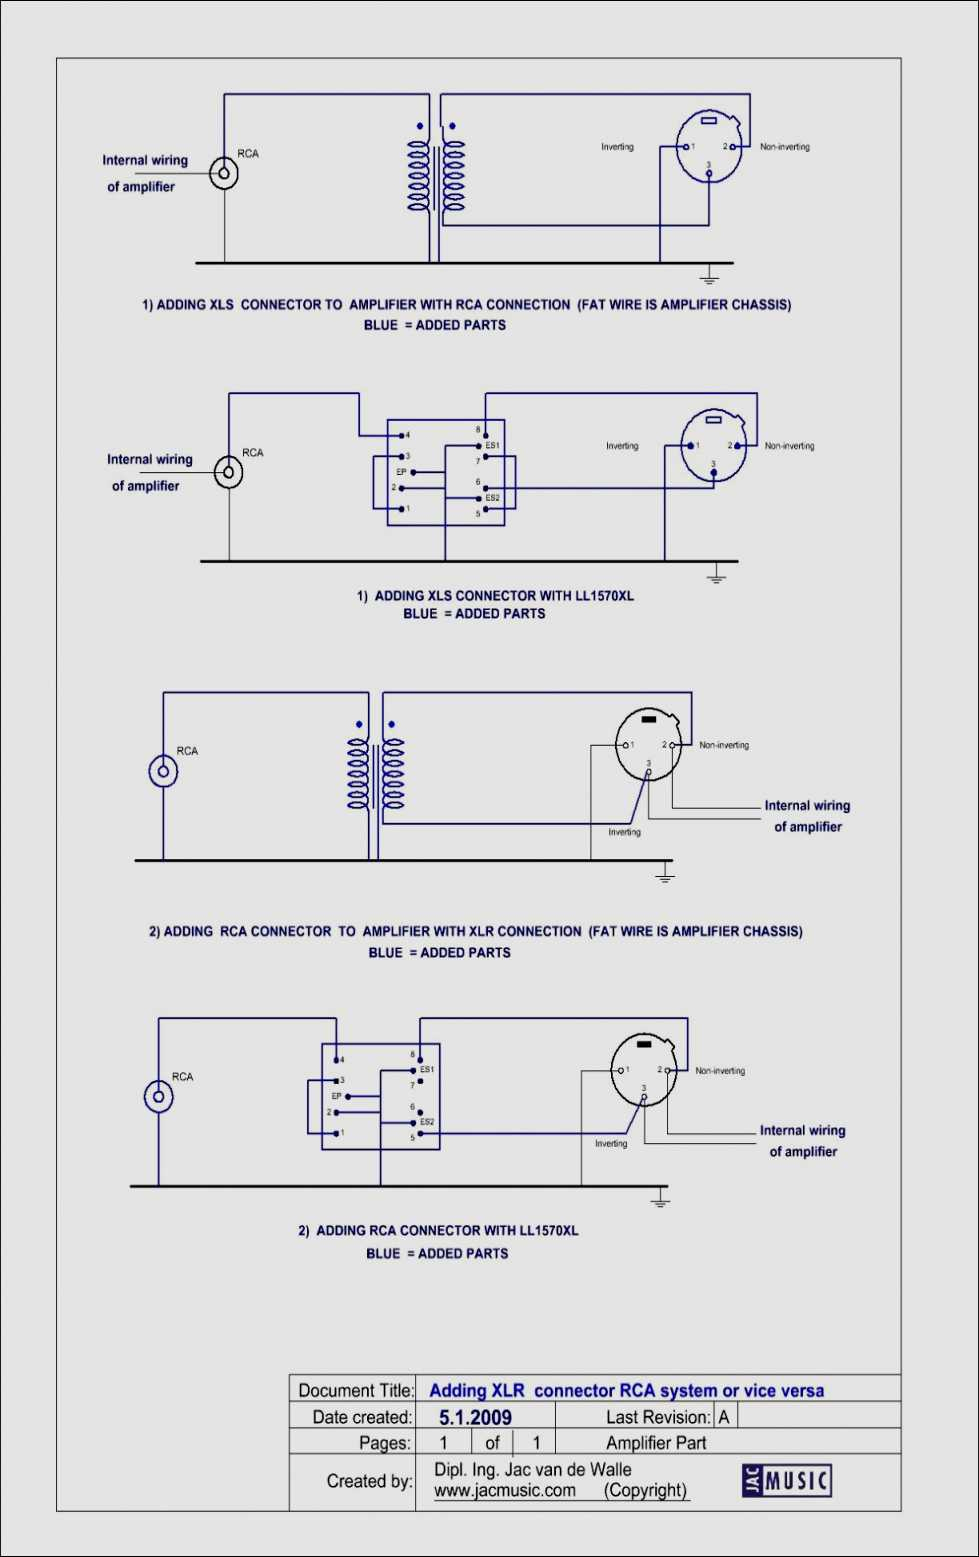 Wiring Diagram For Hdmi To Rca Plugs - Wiring Diagrams - Hdmi To Rca Wiring Diagram